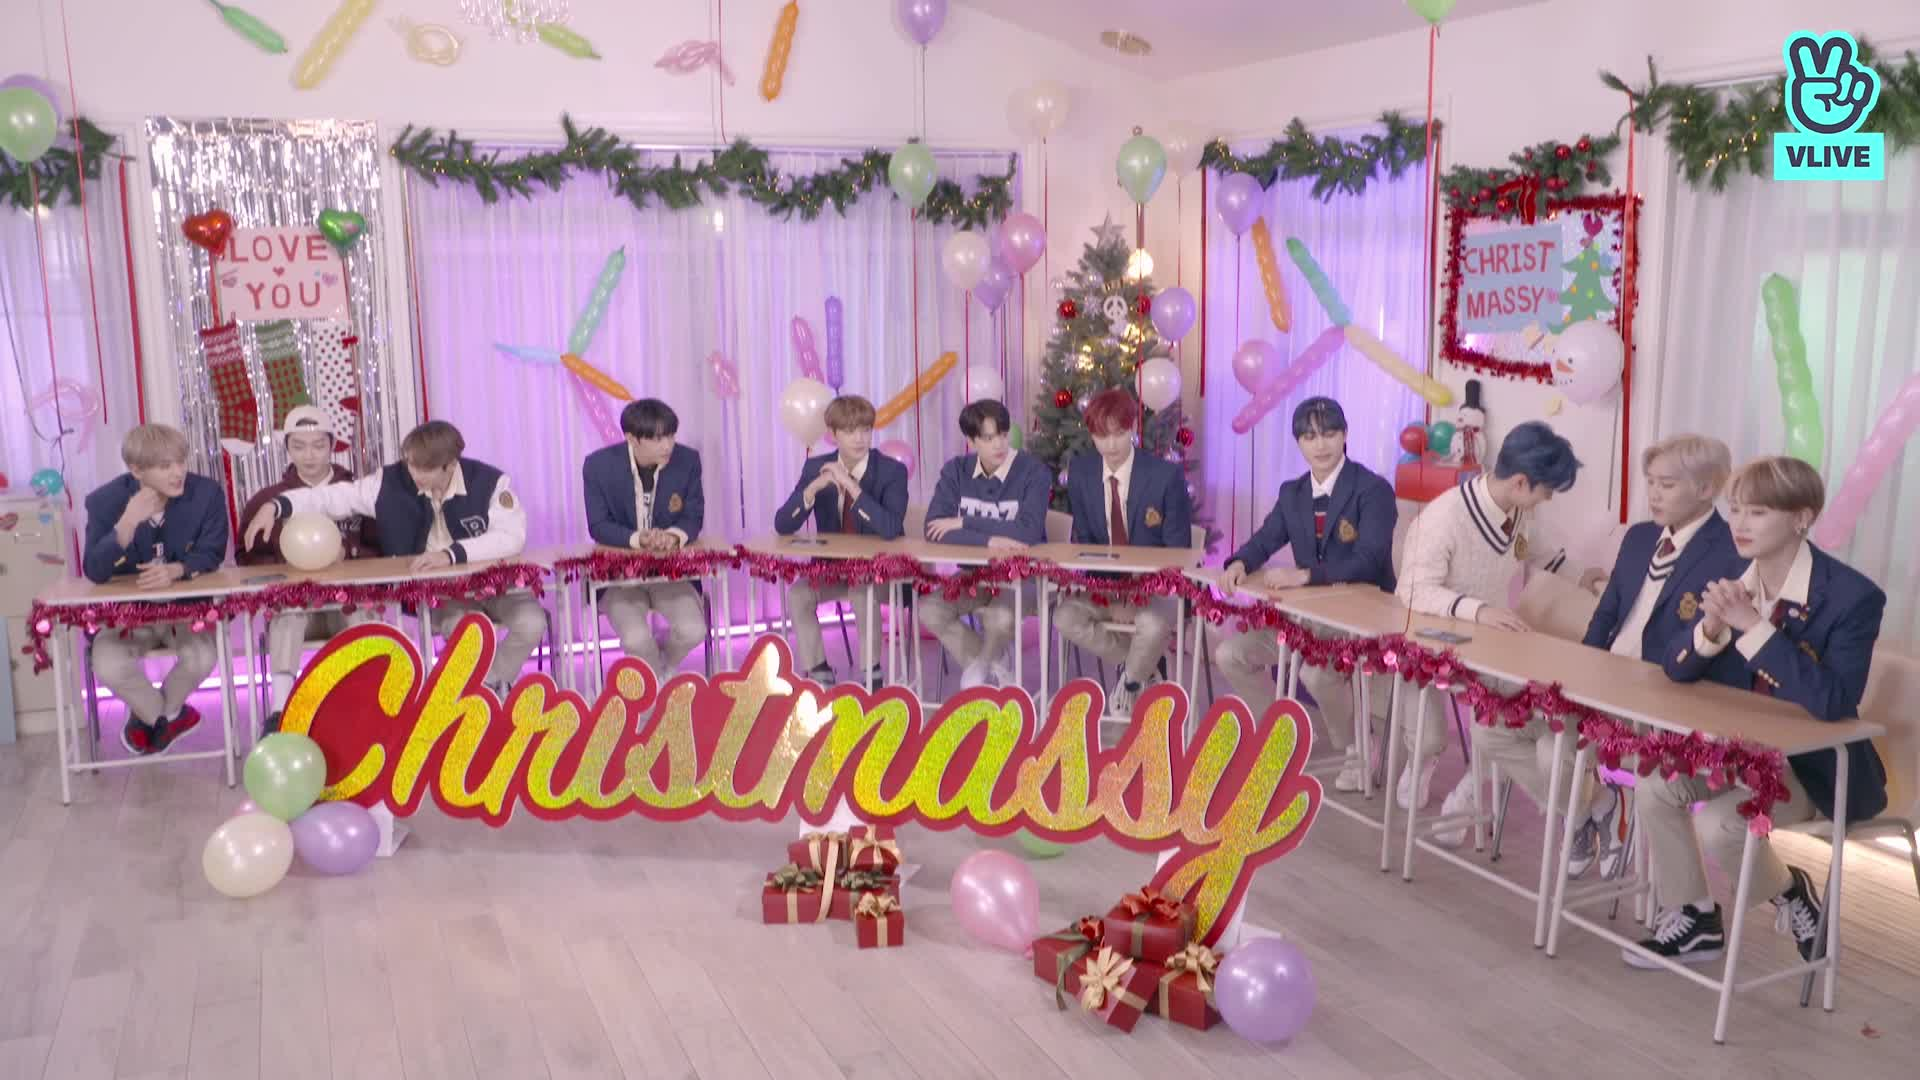 [Replay] THE BOYZ SPECIAL LIVE Happy Christmassy!